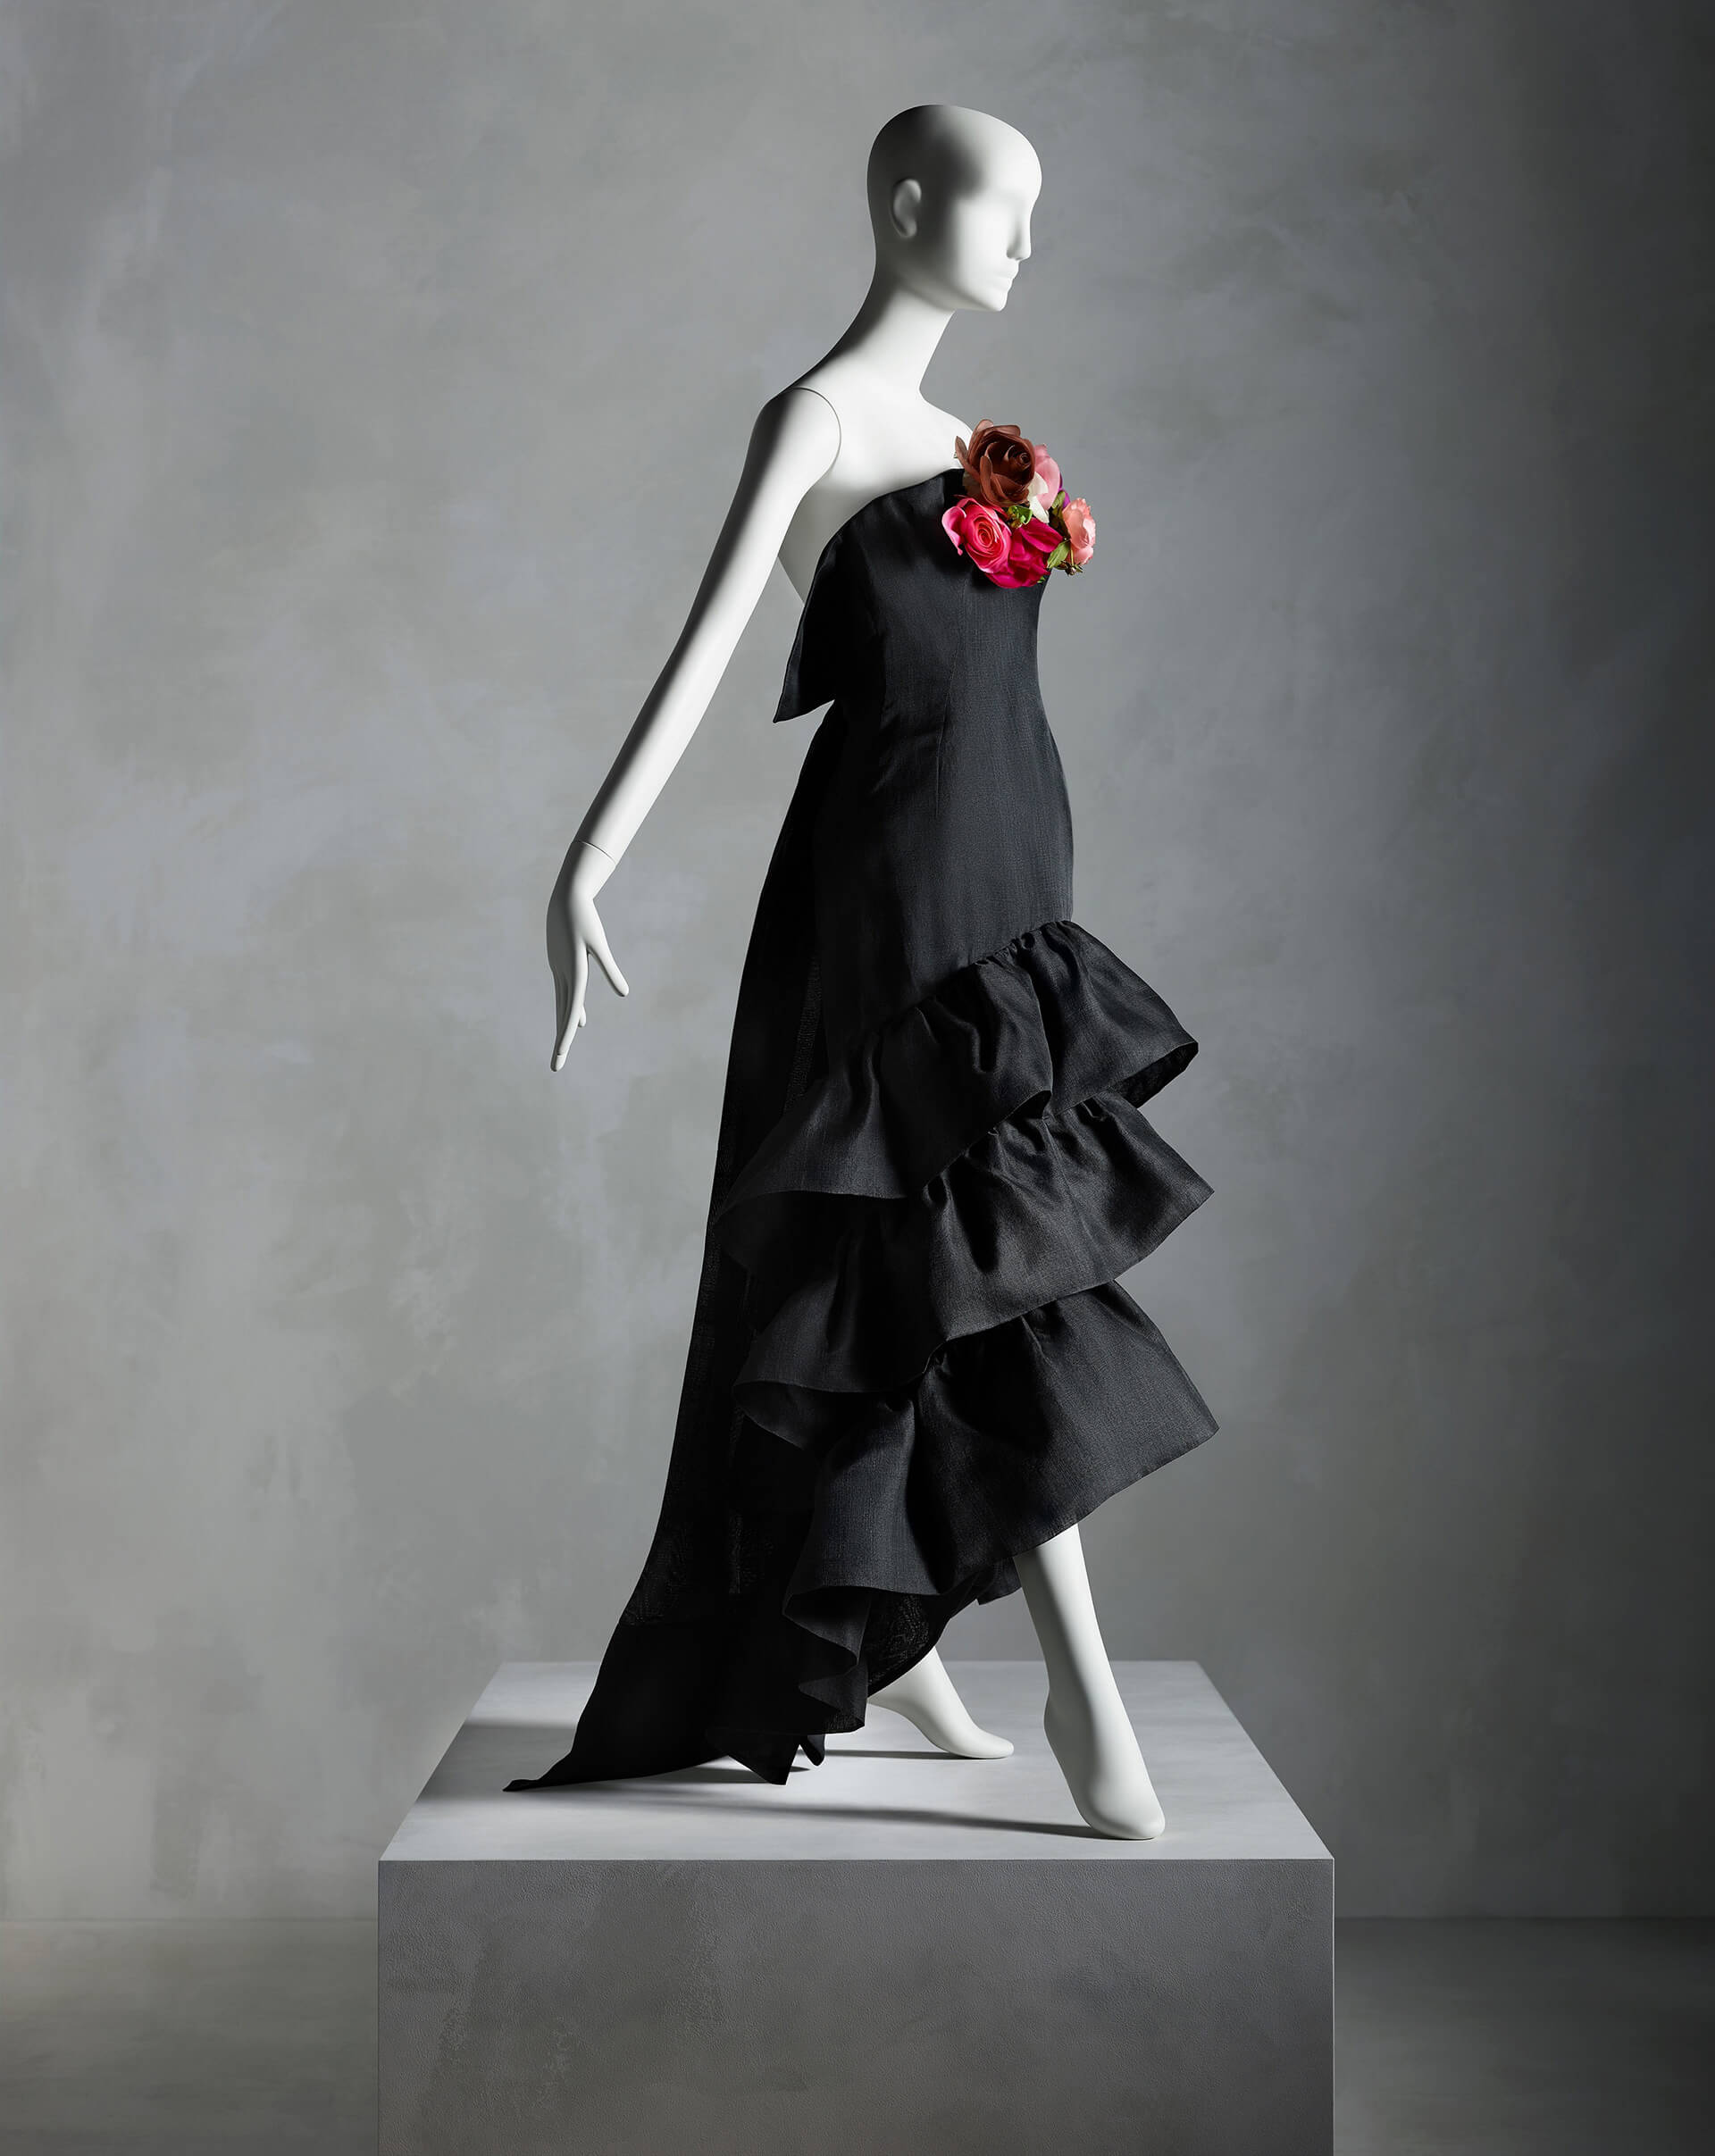 'Evening Dress', Cristóbal Balenciaga (Spanish, 1895–1972) for House of Balenciaga (French, founded 1937), summer 1961; Promised gift of Sandy Schreier  | In Pursuit of Fashion: The Sandy Schreier Collection | The Metropolitan Museum of Art | STIRworld